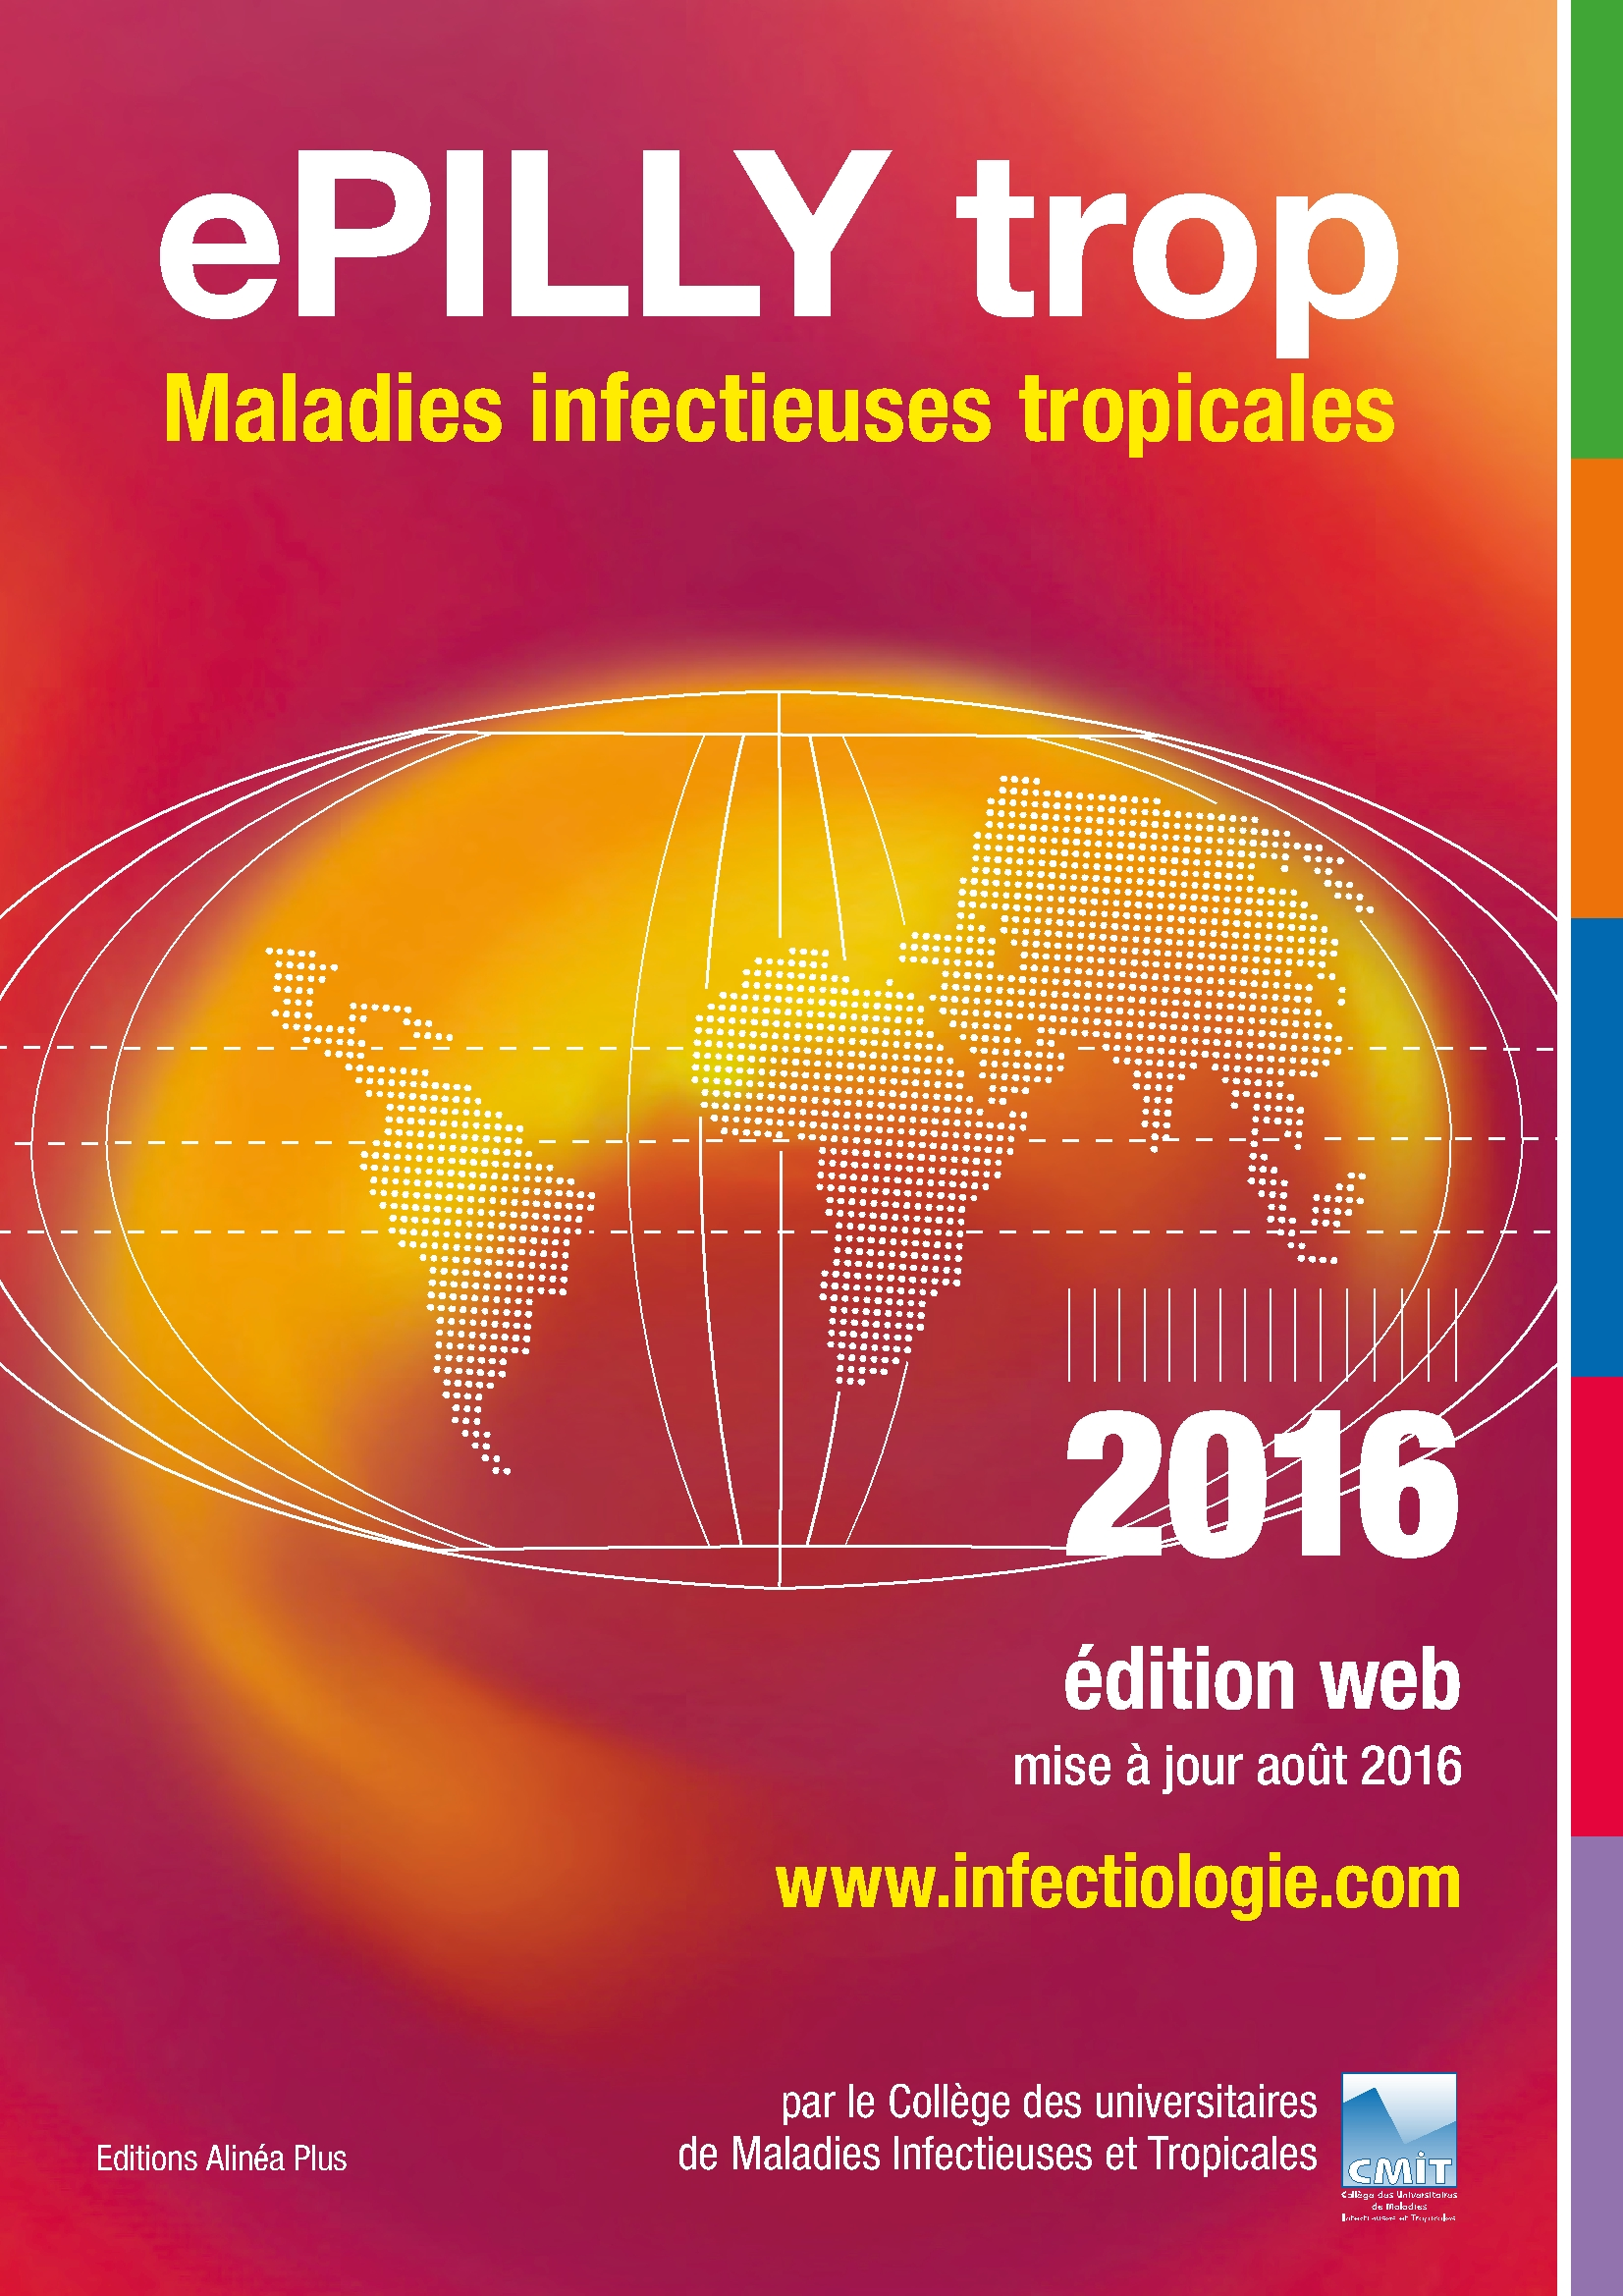 Livres Médicales - ePILLY trop 2016 Maladies infectieuses tropicales Epilly10